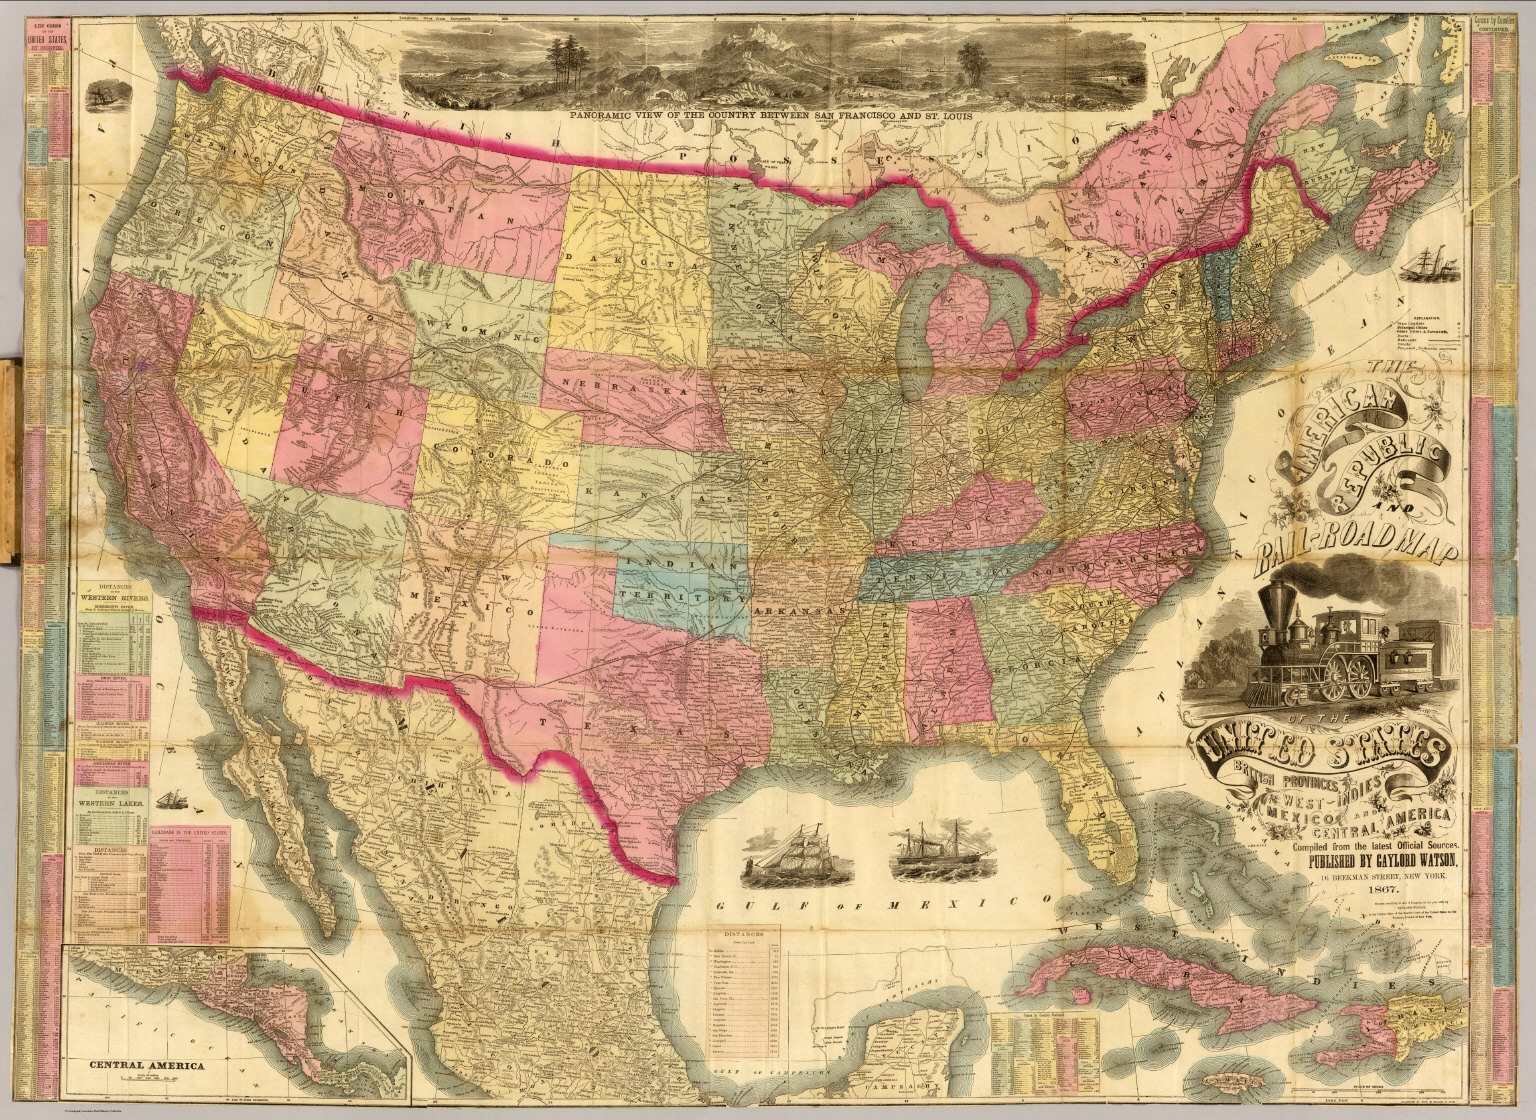 The American Republic and rail-road map of the United States ...